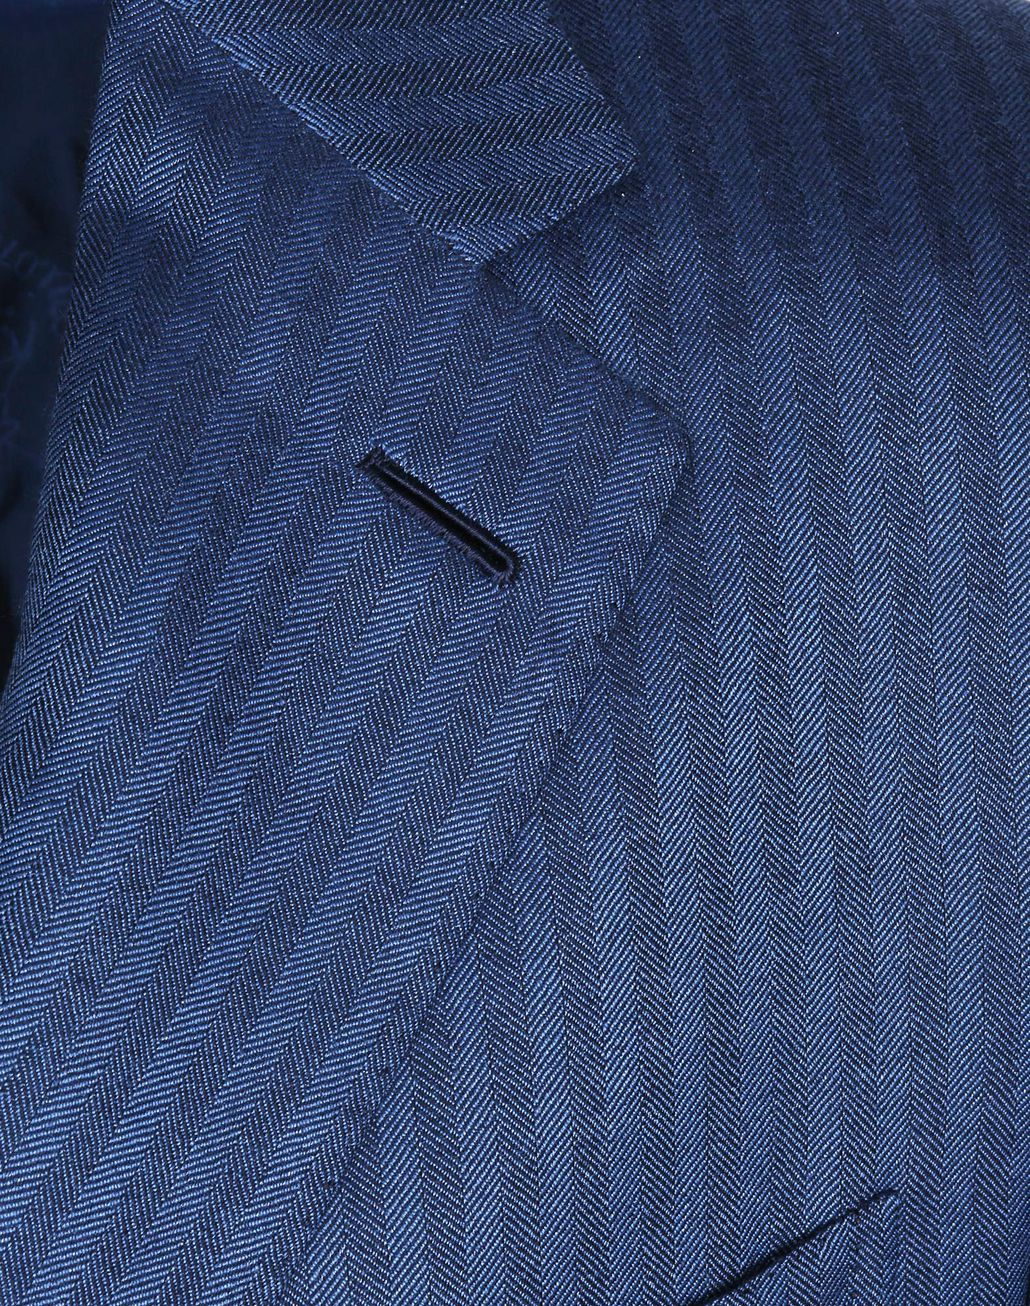 BRIONI Bluette Herringbone Condotti Cashmere Jacket Suits & Jackets Man e